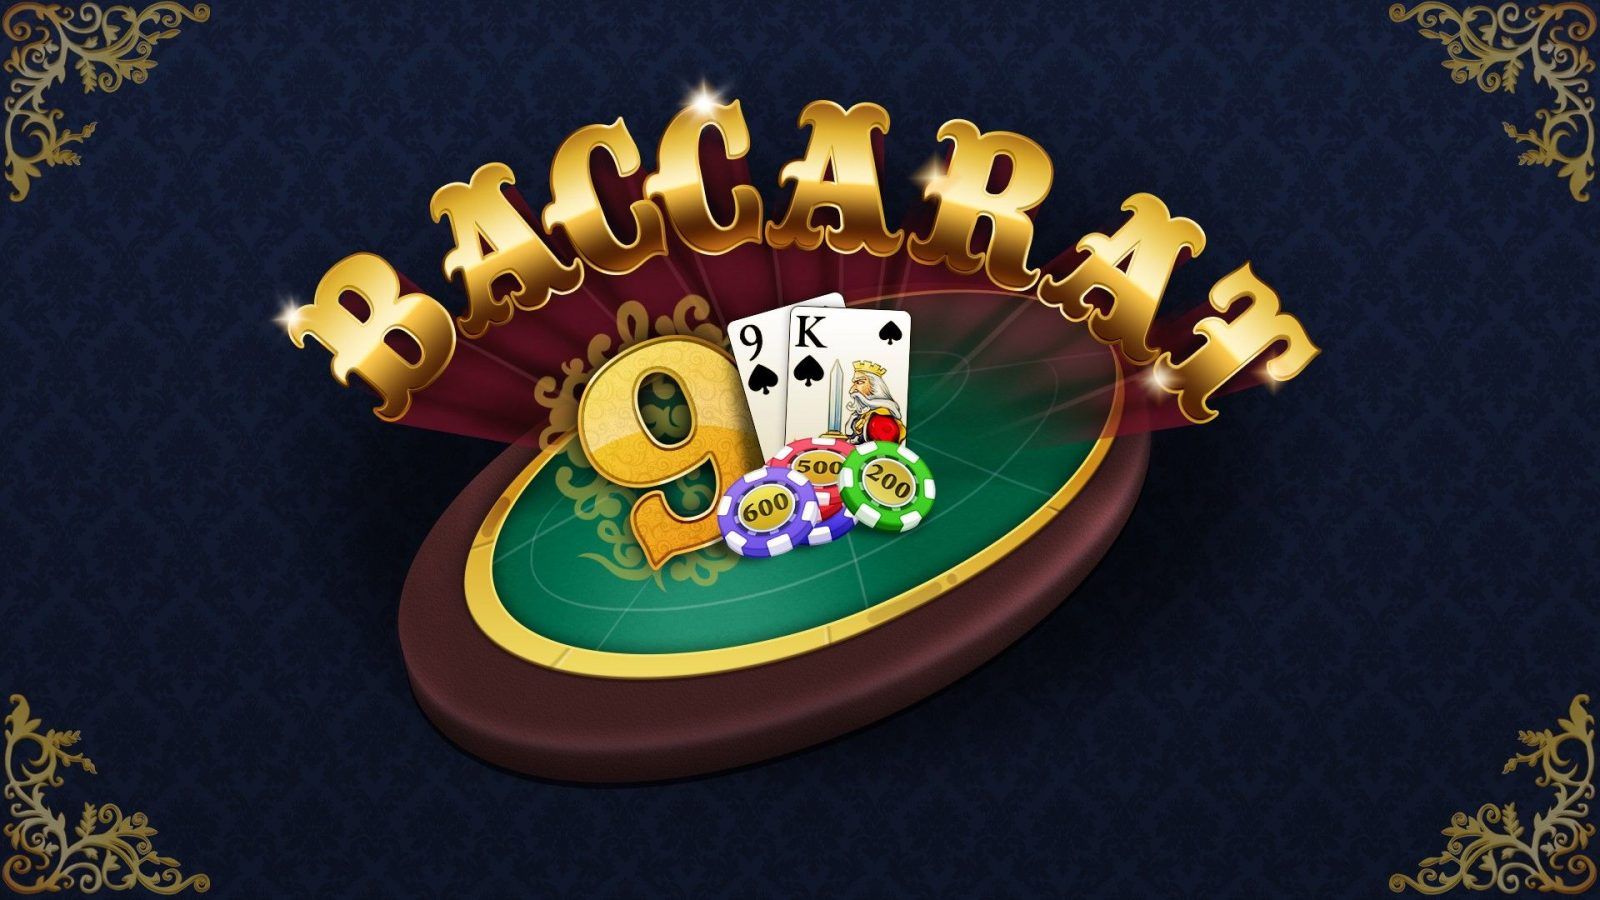 Baccarat casino – great time spending for all tastes is guaranteed